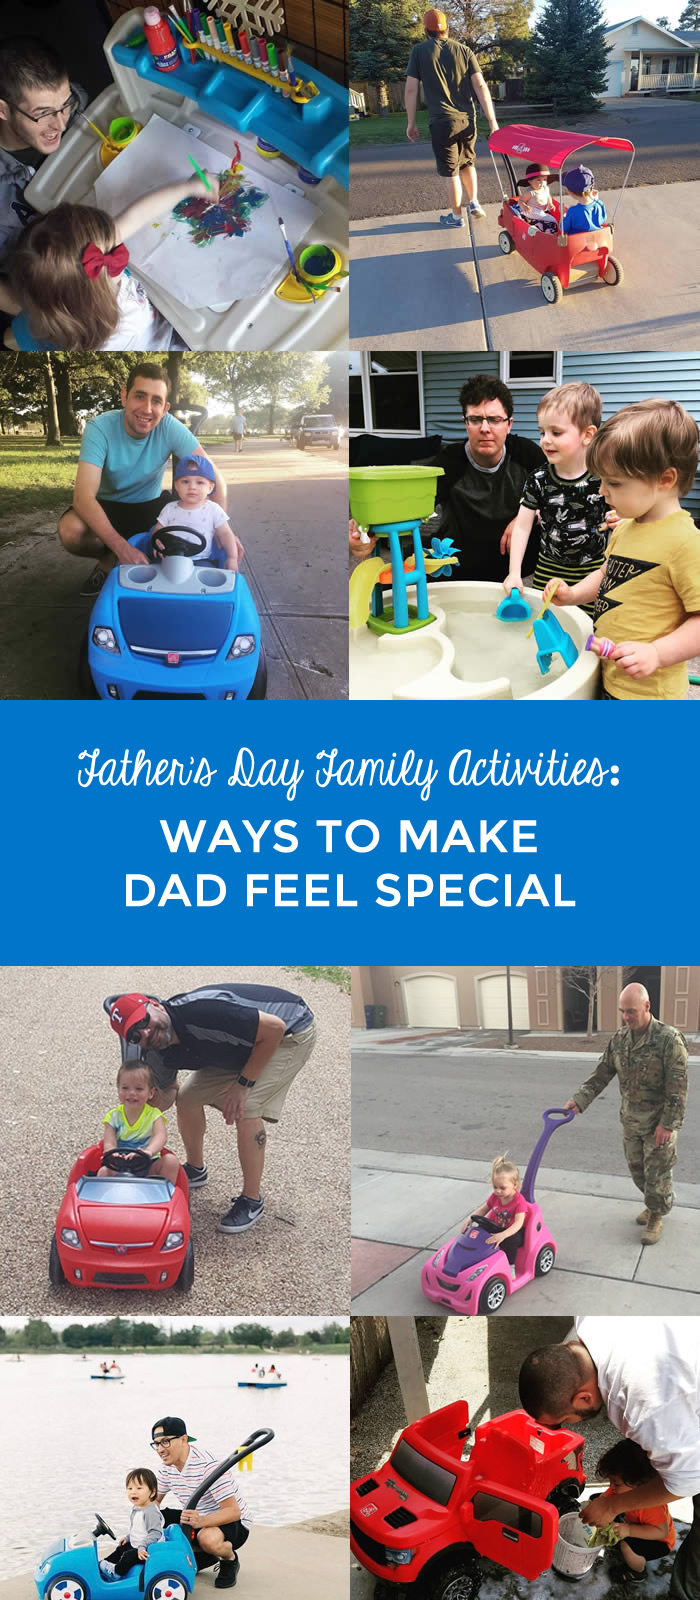 Father's Day Family Activities: Ways to Make Dad Feel Special